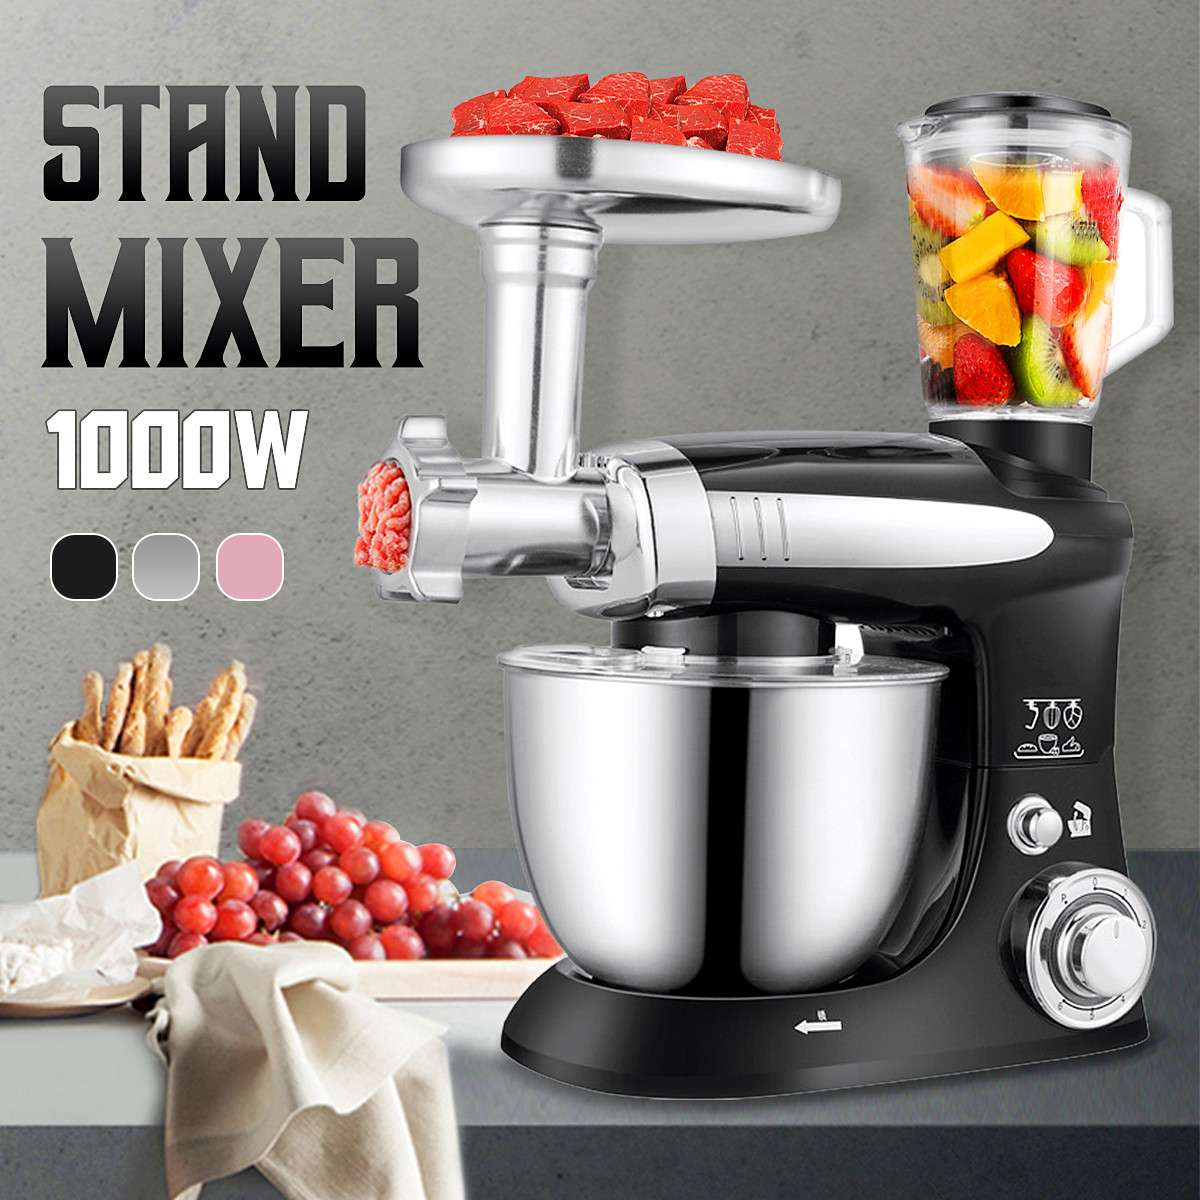 Electric Kitchen Flour Pizza Dough Stand Mixer Food Processor Egg Beater Baking Tools with Fruit Juicer Bowl Cover hook whisk